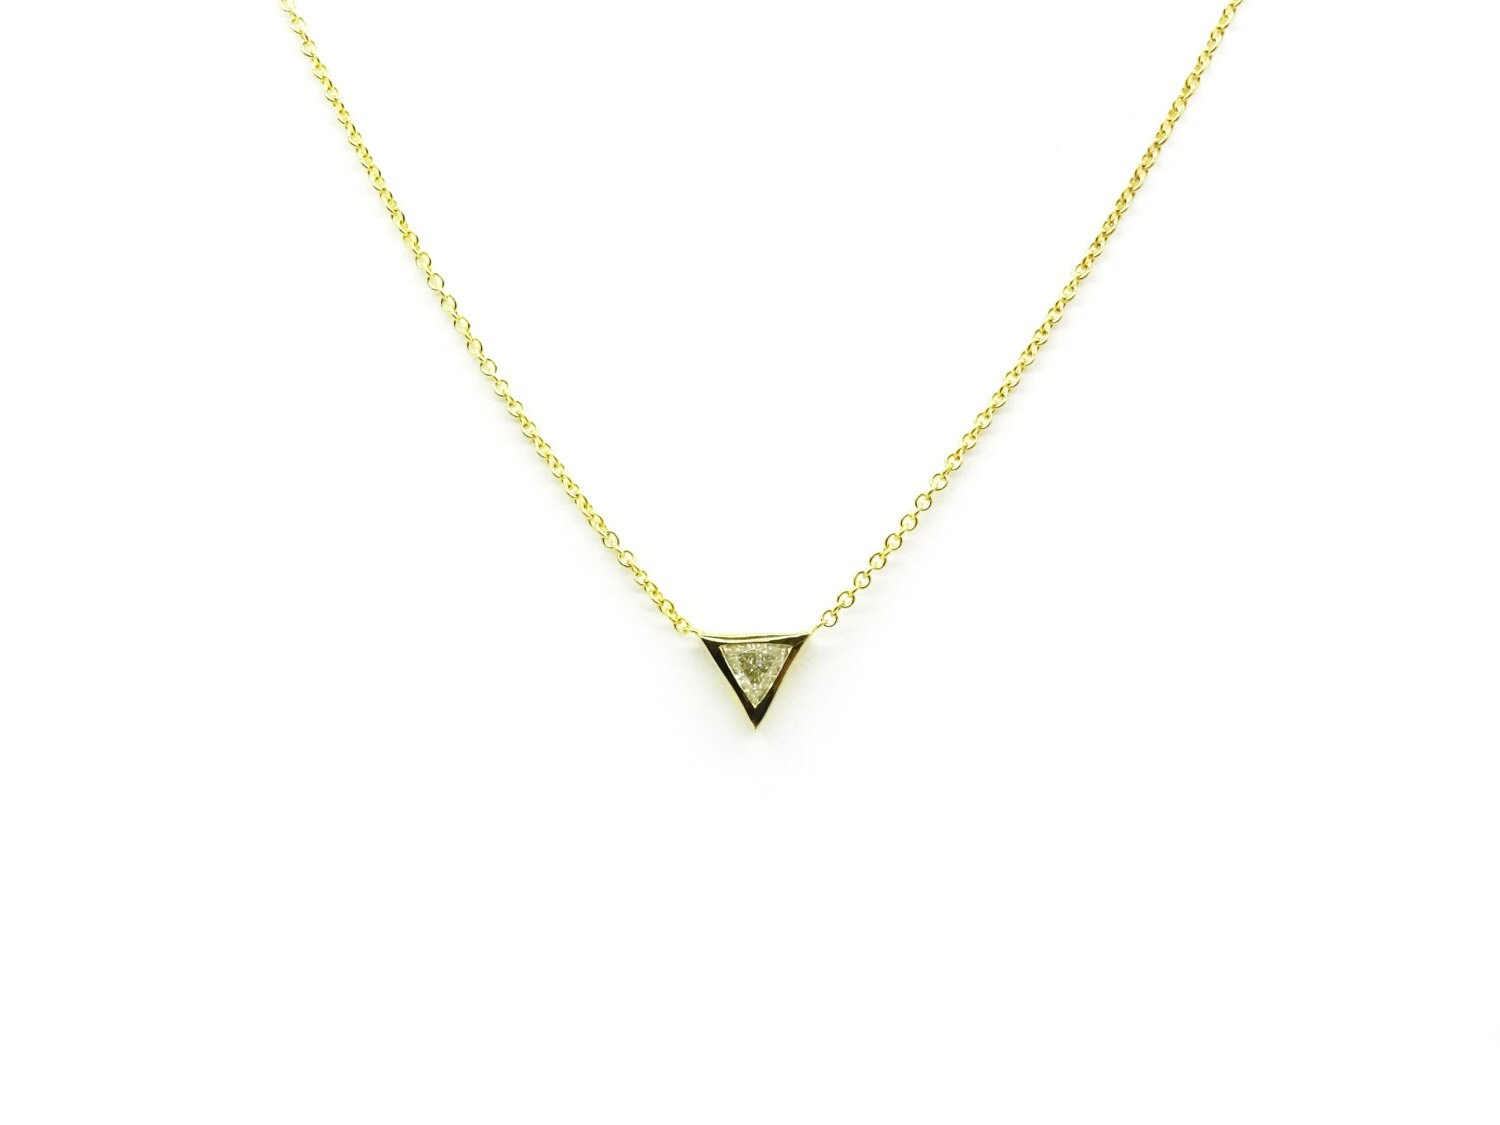 Promo sale trillion diamond necklace triangle pendant simple trillion diamond necklace triangle pendant simple diamond necklace diamond pendant thin gold diamond necklace aloadofball Gallery